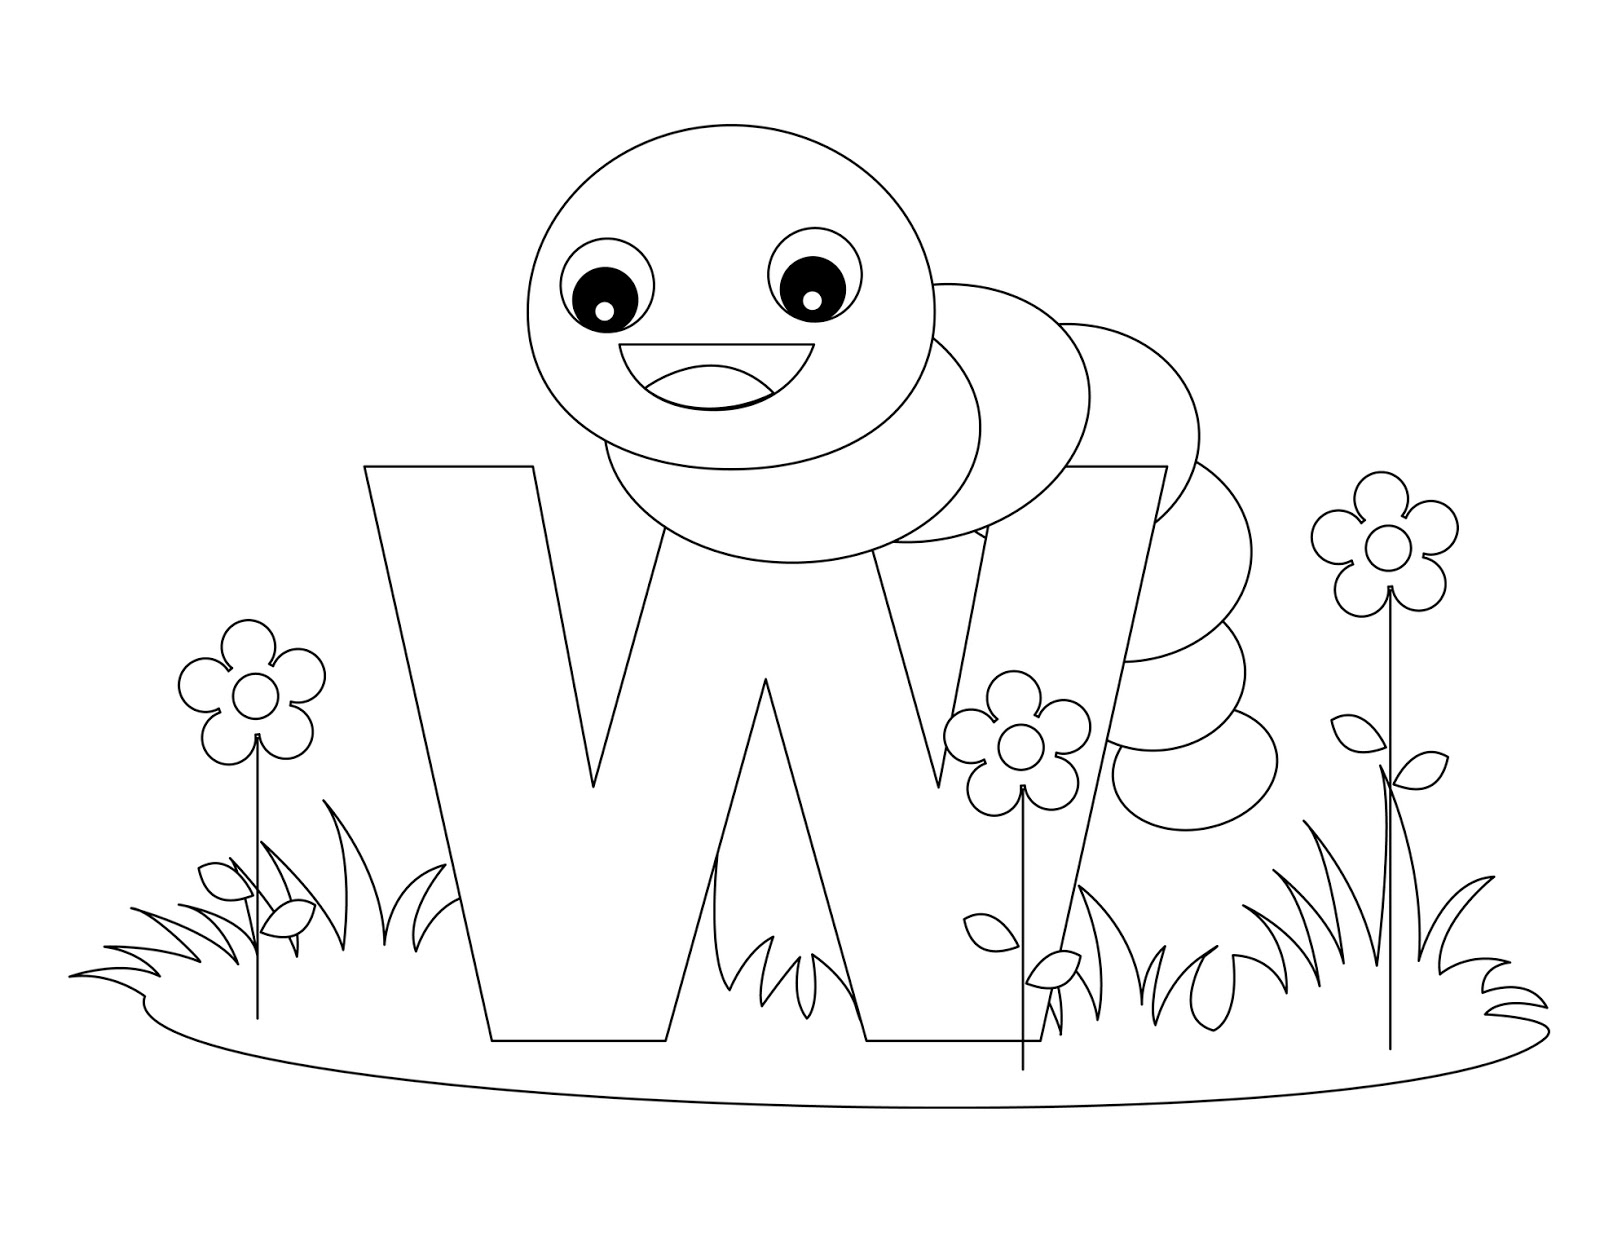 animal alphabet colouring pages we love being moms a z zoo animal coloring pages colouring animal pages alphabet